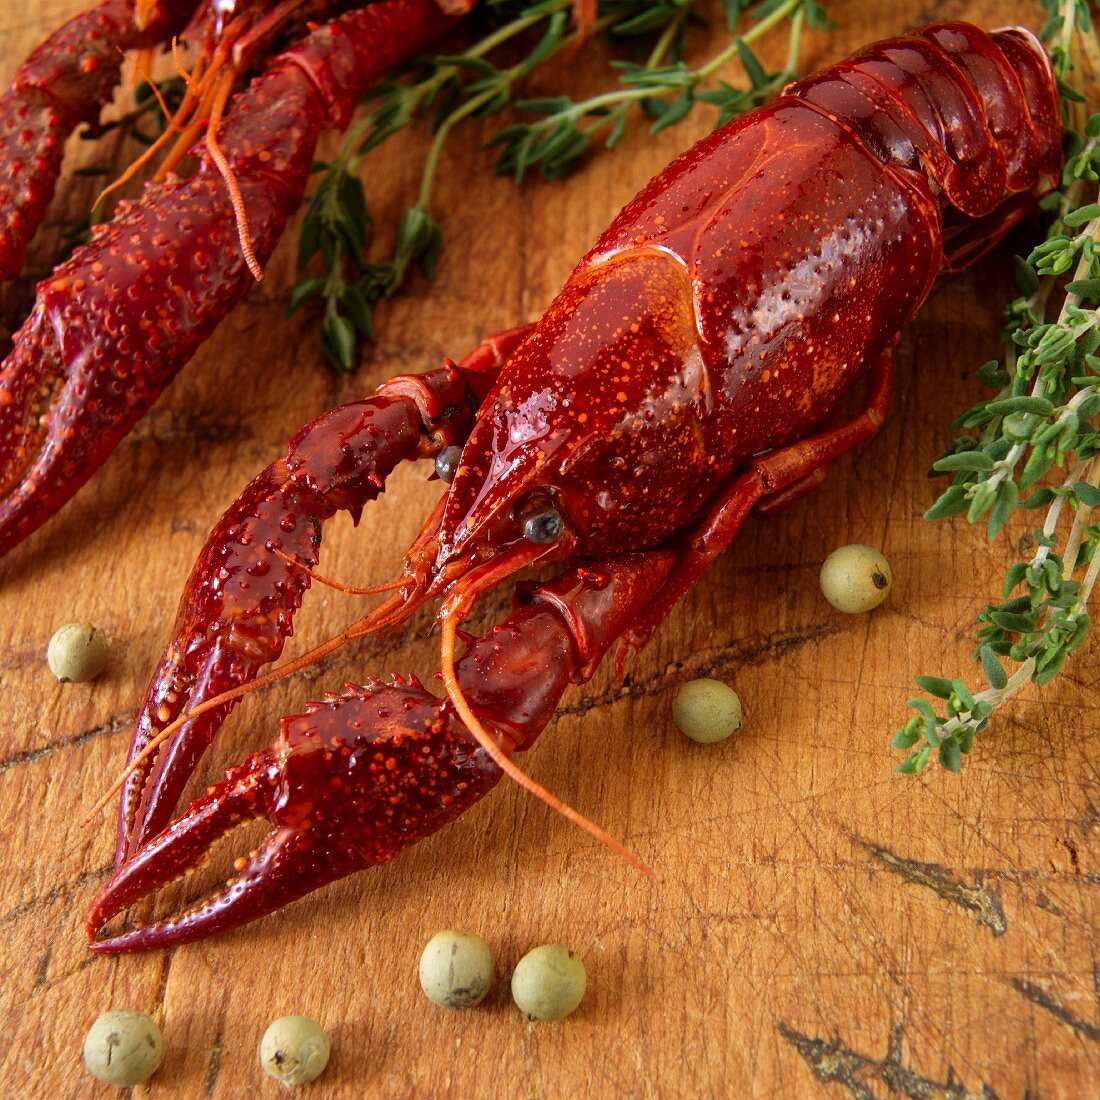 Boiled crayfish with herbs (close up)